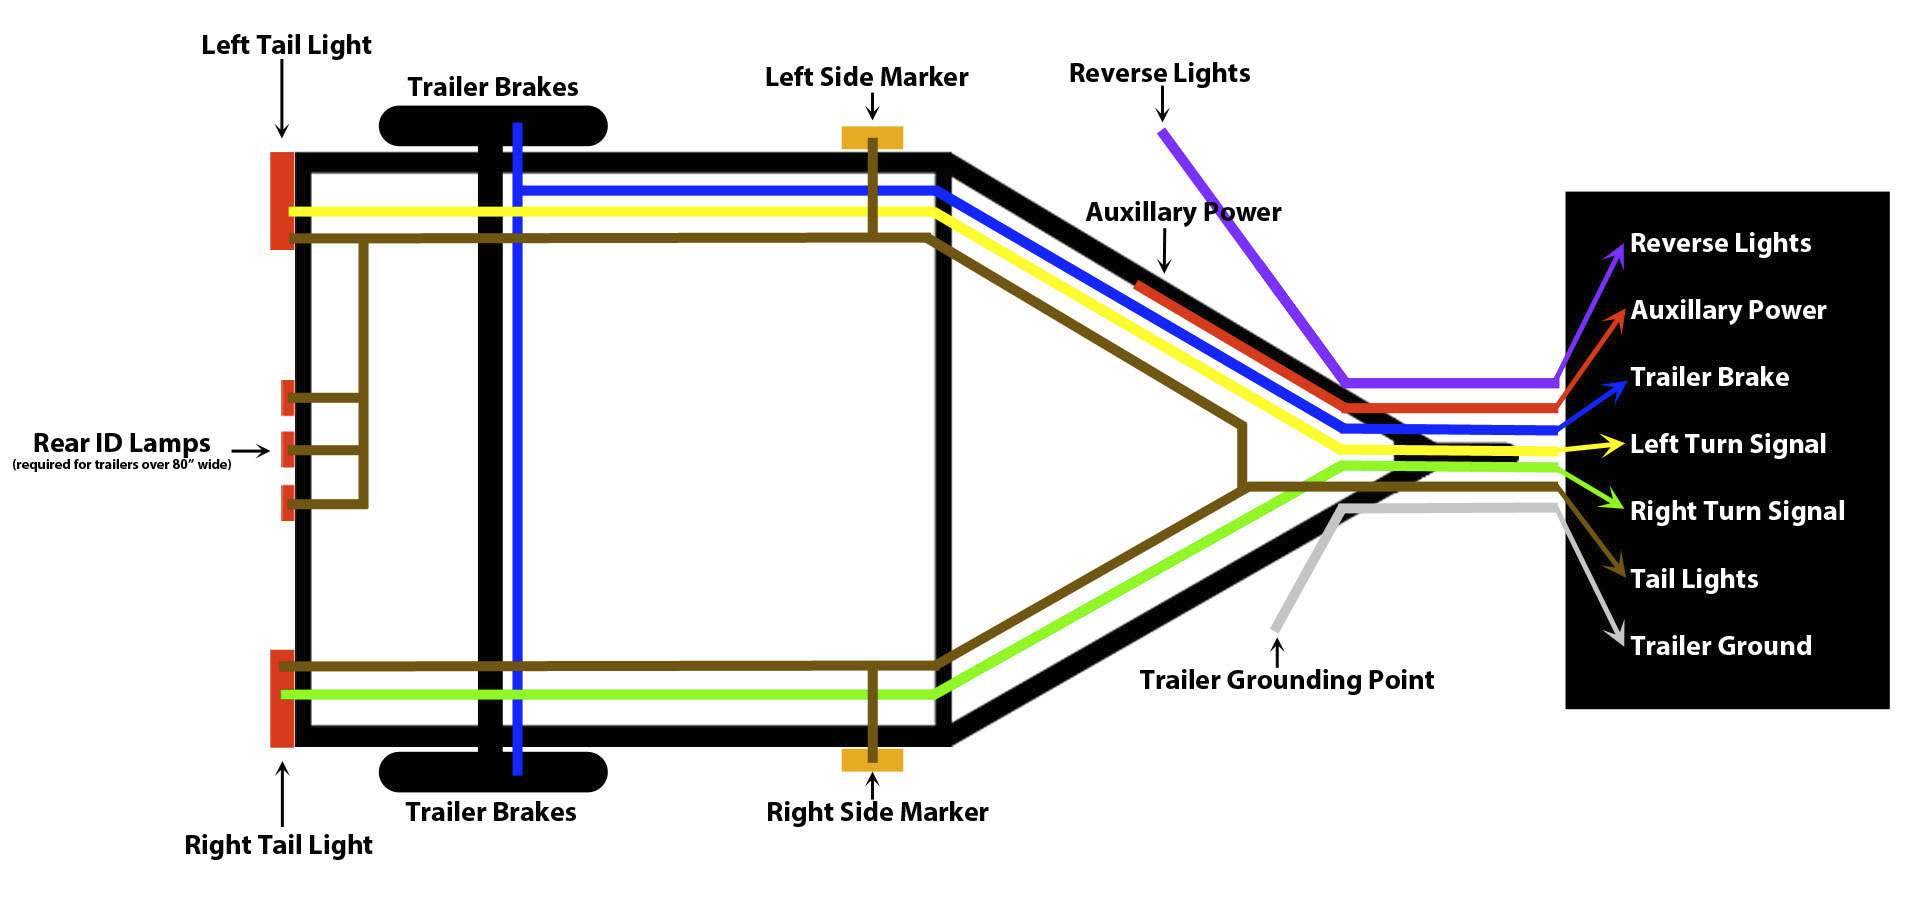 wiring diagram for snowmobile trailer online wiring diagram Fifth Wheel Wiring Diagram triton trailer wiring harness online wiring diagram wiring diagram for snowmobile trailer triton trailer 7 pin